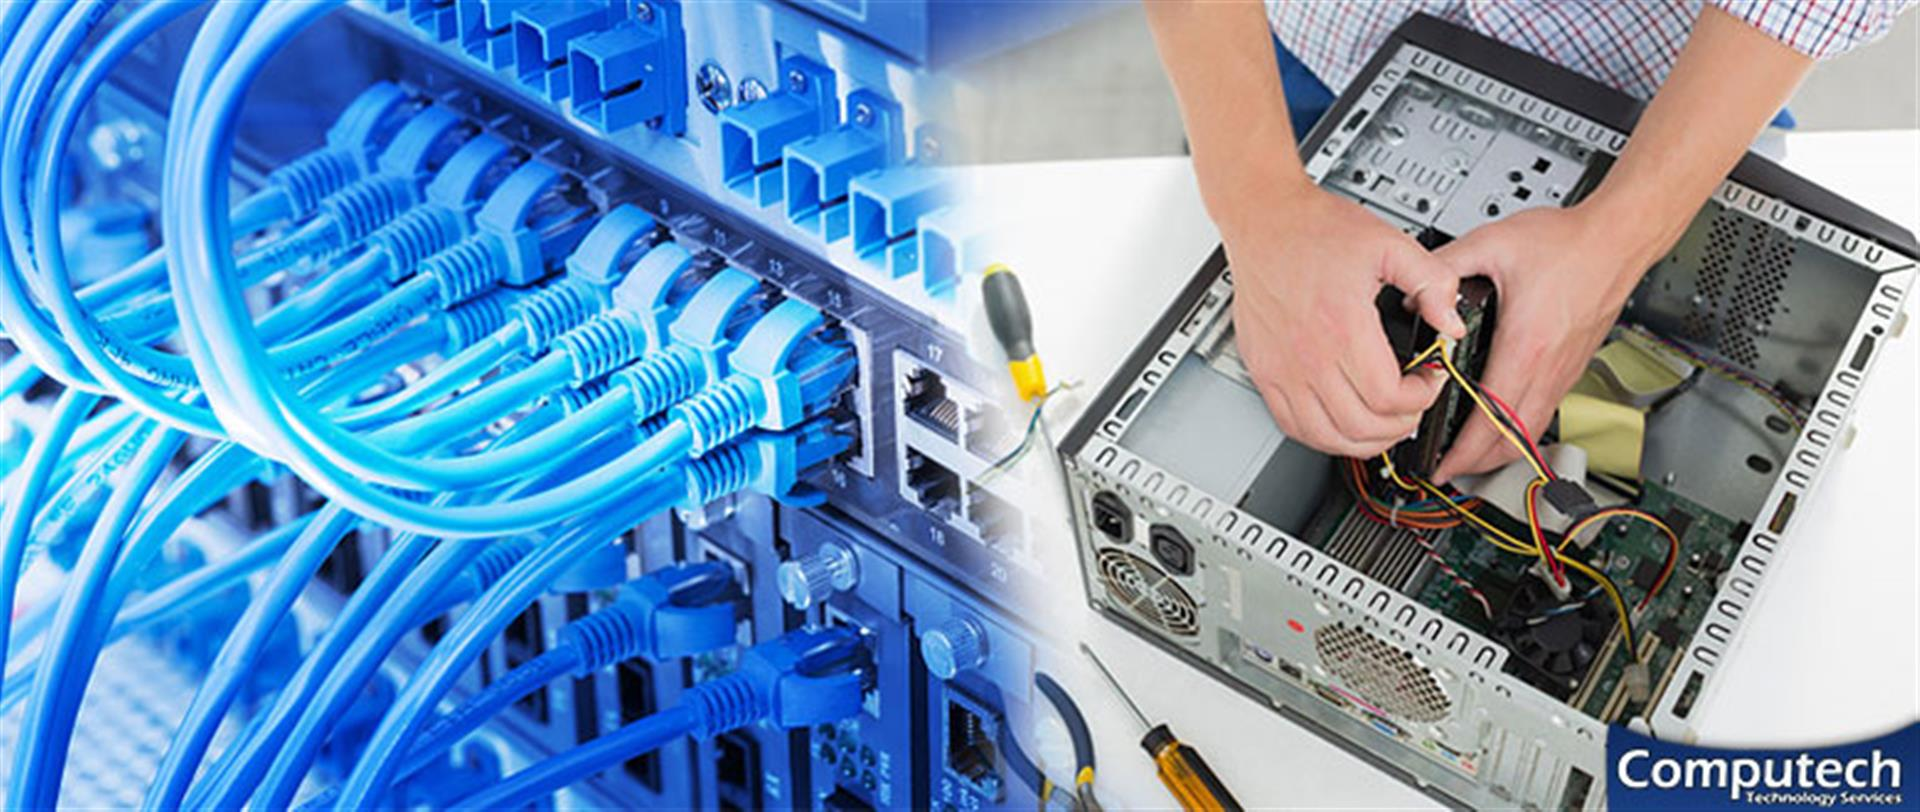 Vienna Georgia On Site Computer & Printer Repair, Network, Voice & Data Cabling Solutions